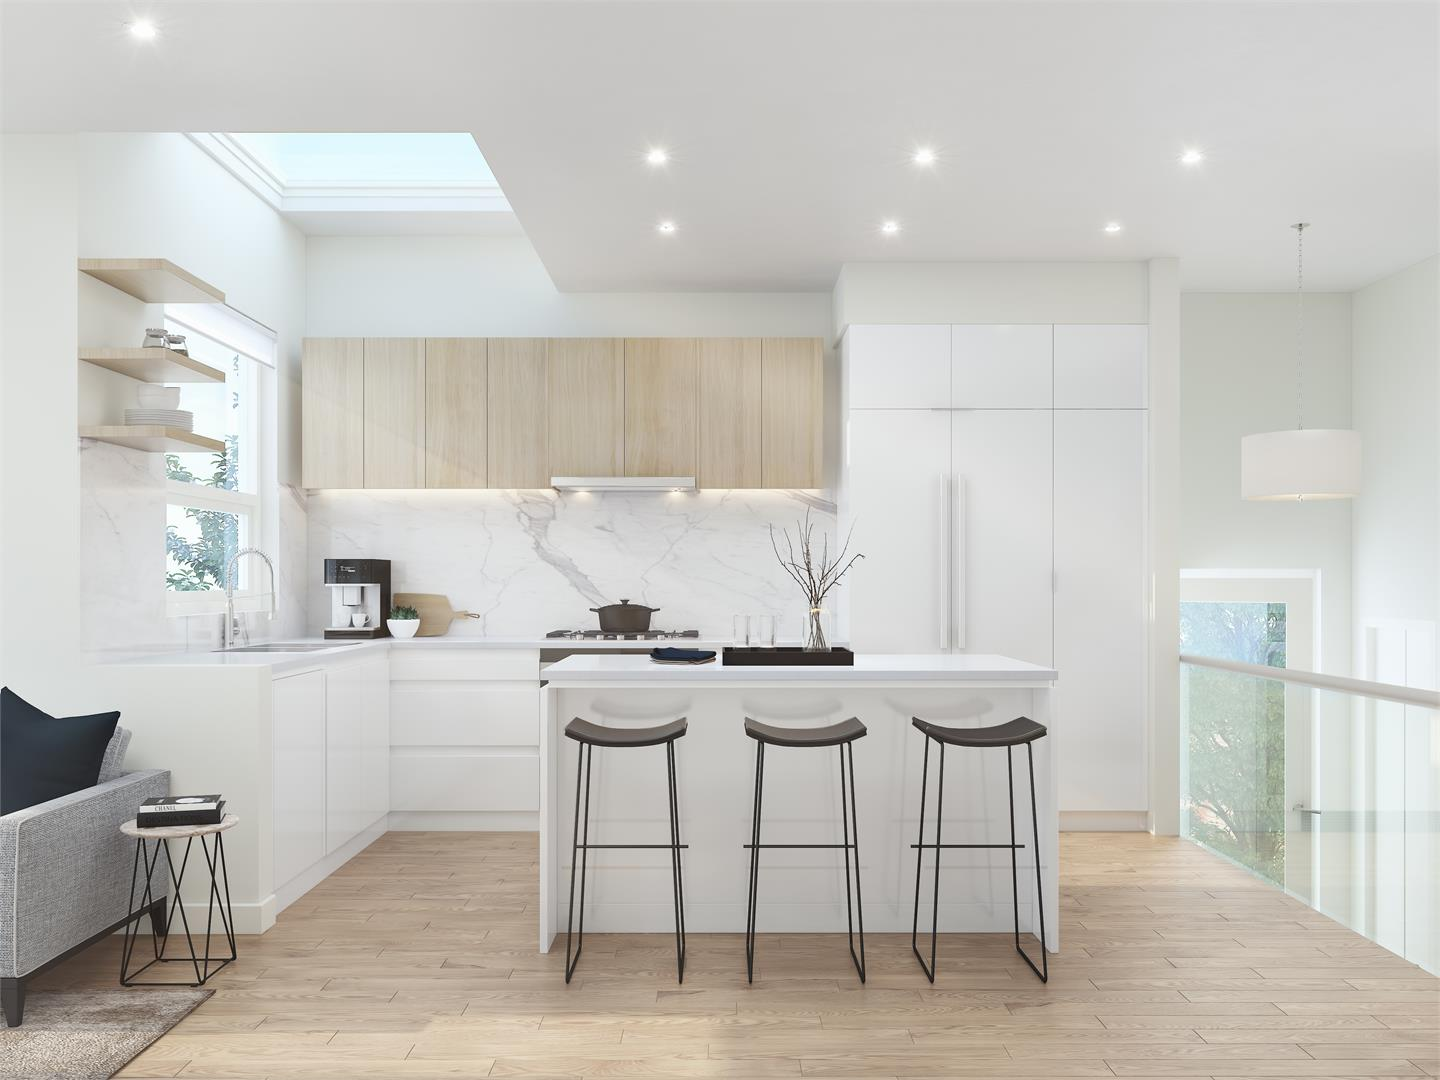 Kitchen concept for Zeo Kits by Gannon Ross Designs.